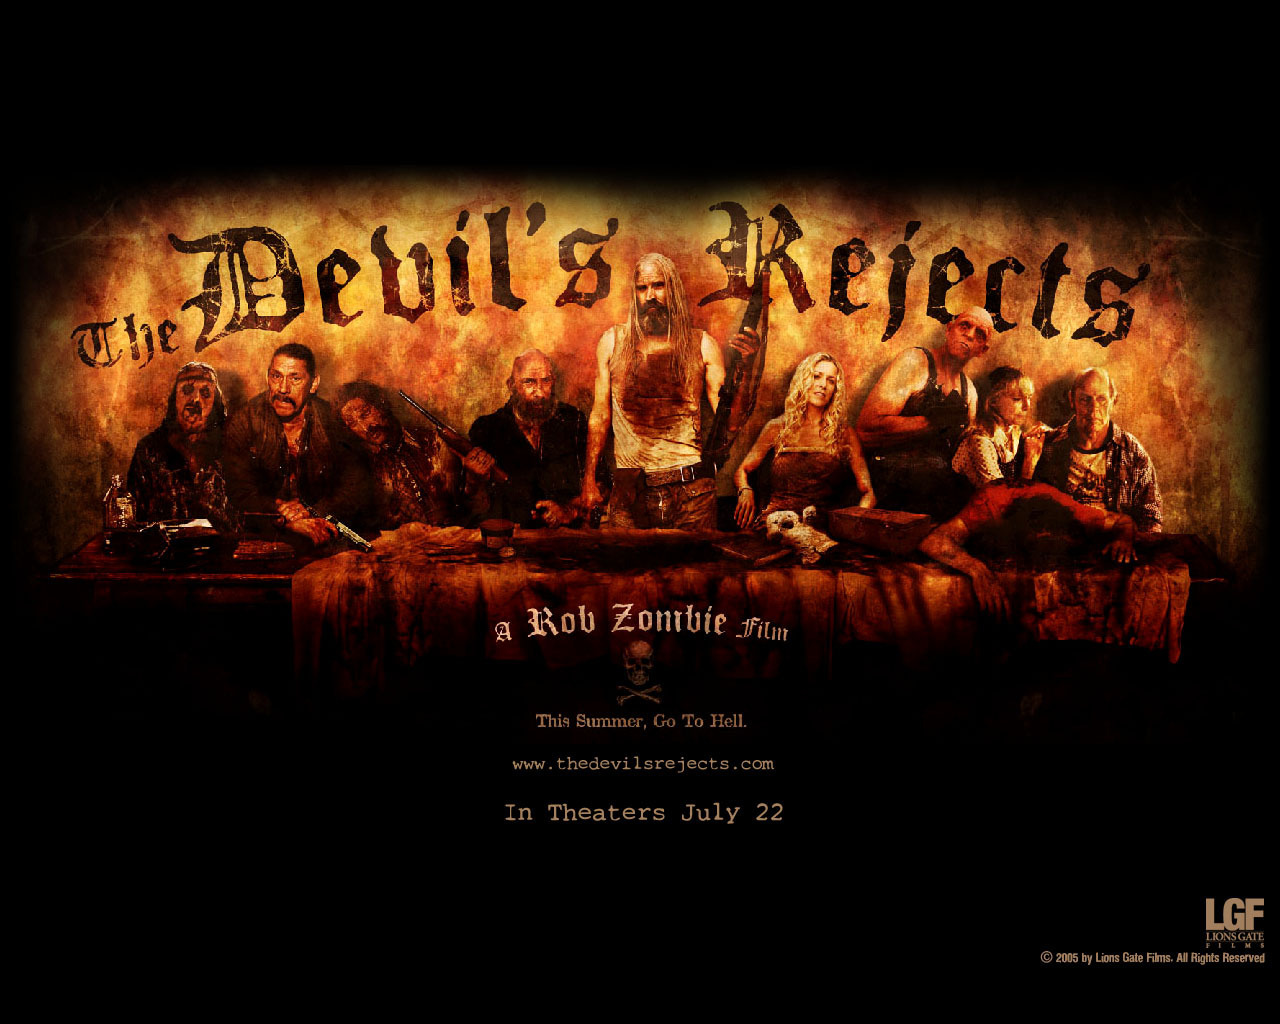 The Devils Rejects wallpapers   Horror Movies Wallpaper 6444460 1280x1024